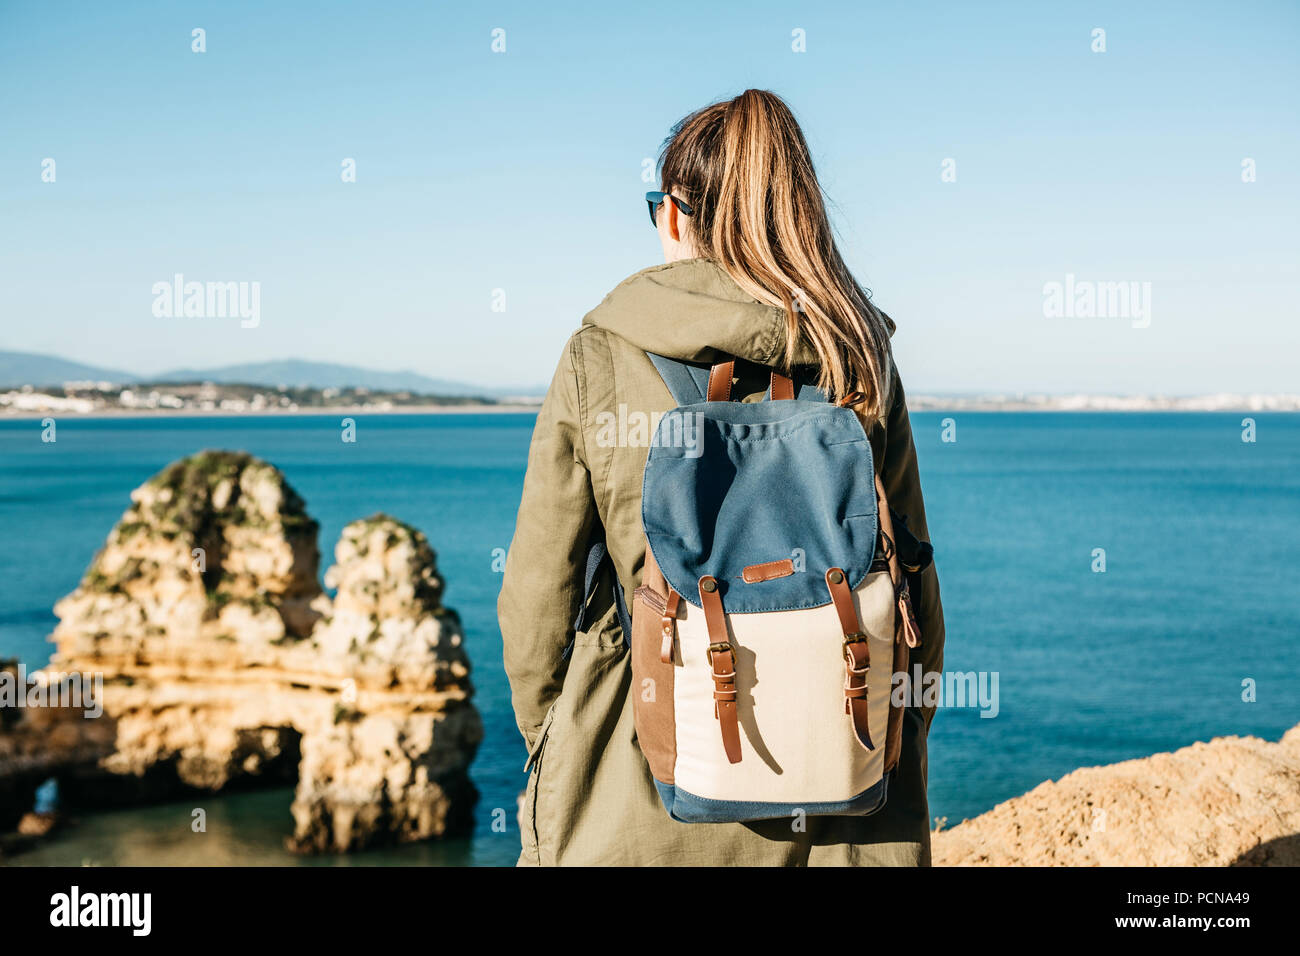 A tourist girl or a traveler with a backpack admiring the beautiful view of the Atlantic Ocean in Portugal. - Stock Image